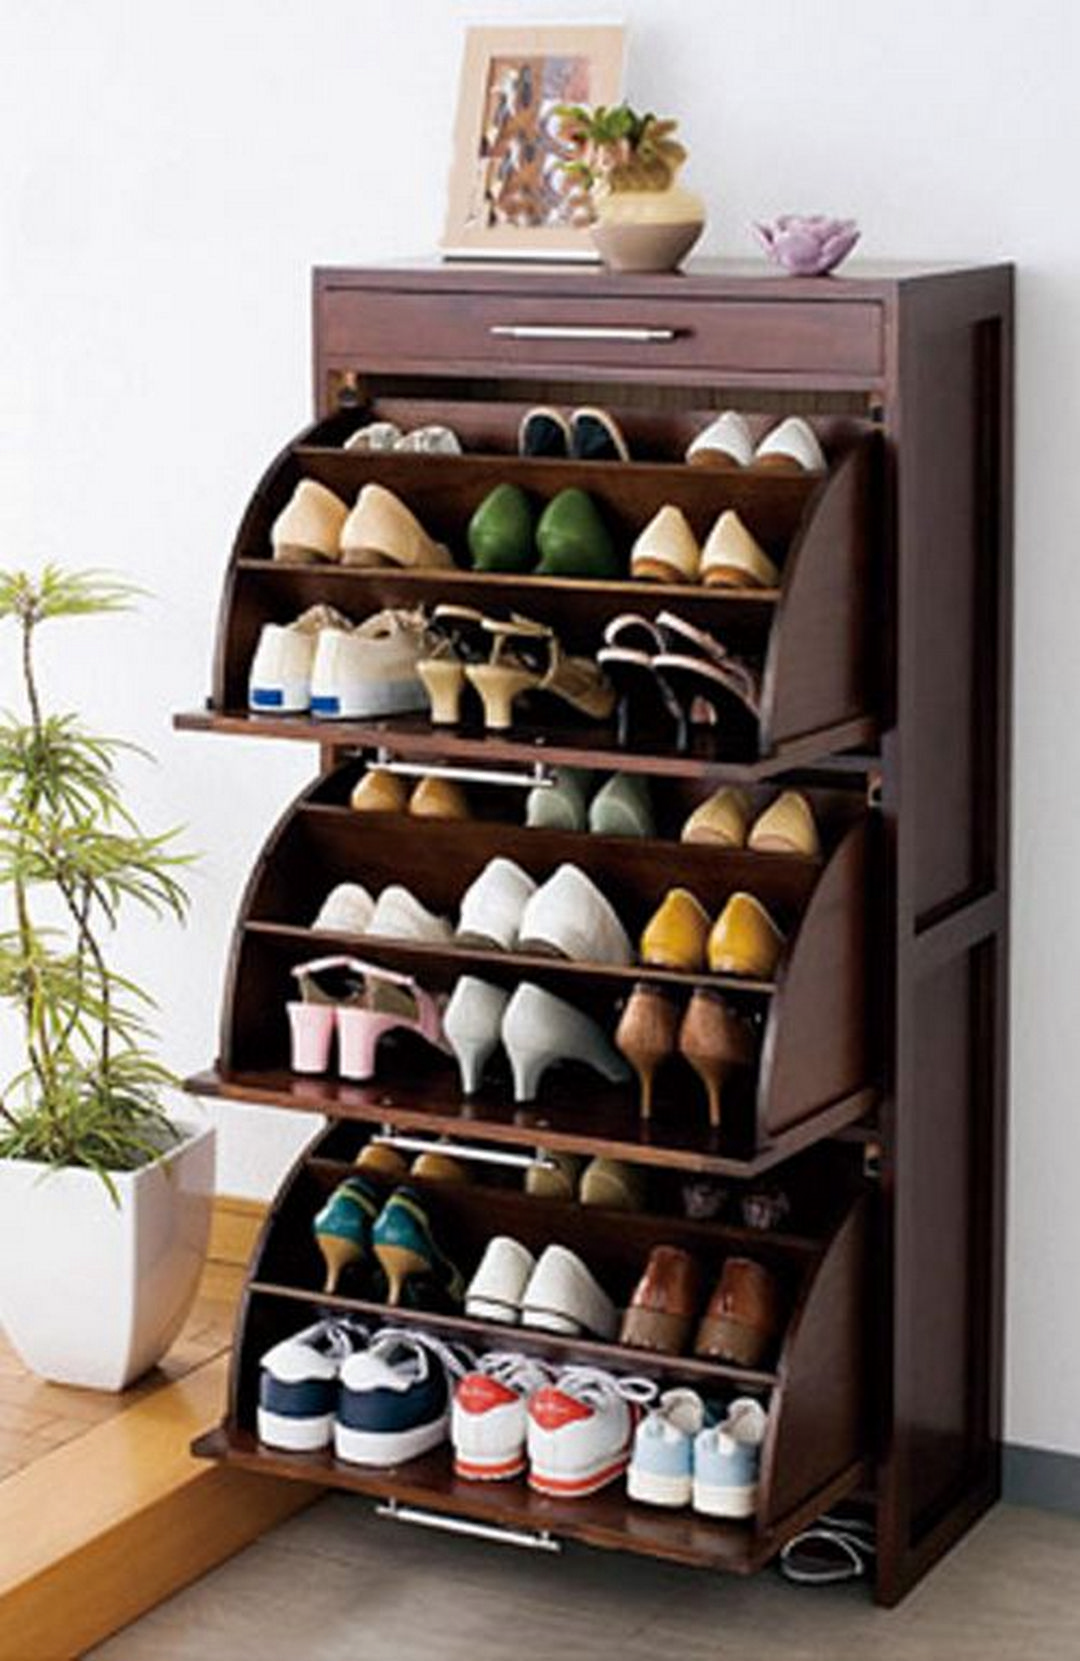 Mueble Para Dvd Practical Shoes Rack Design Ideas For Small Homes Knifknack